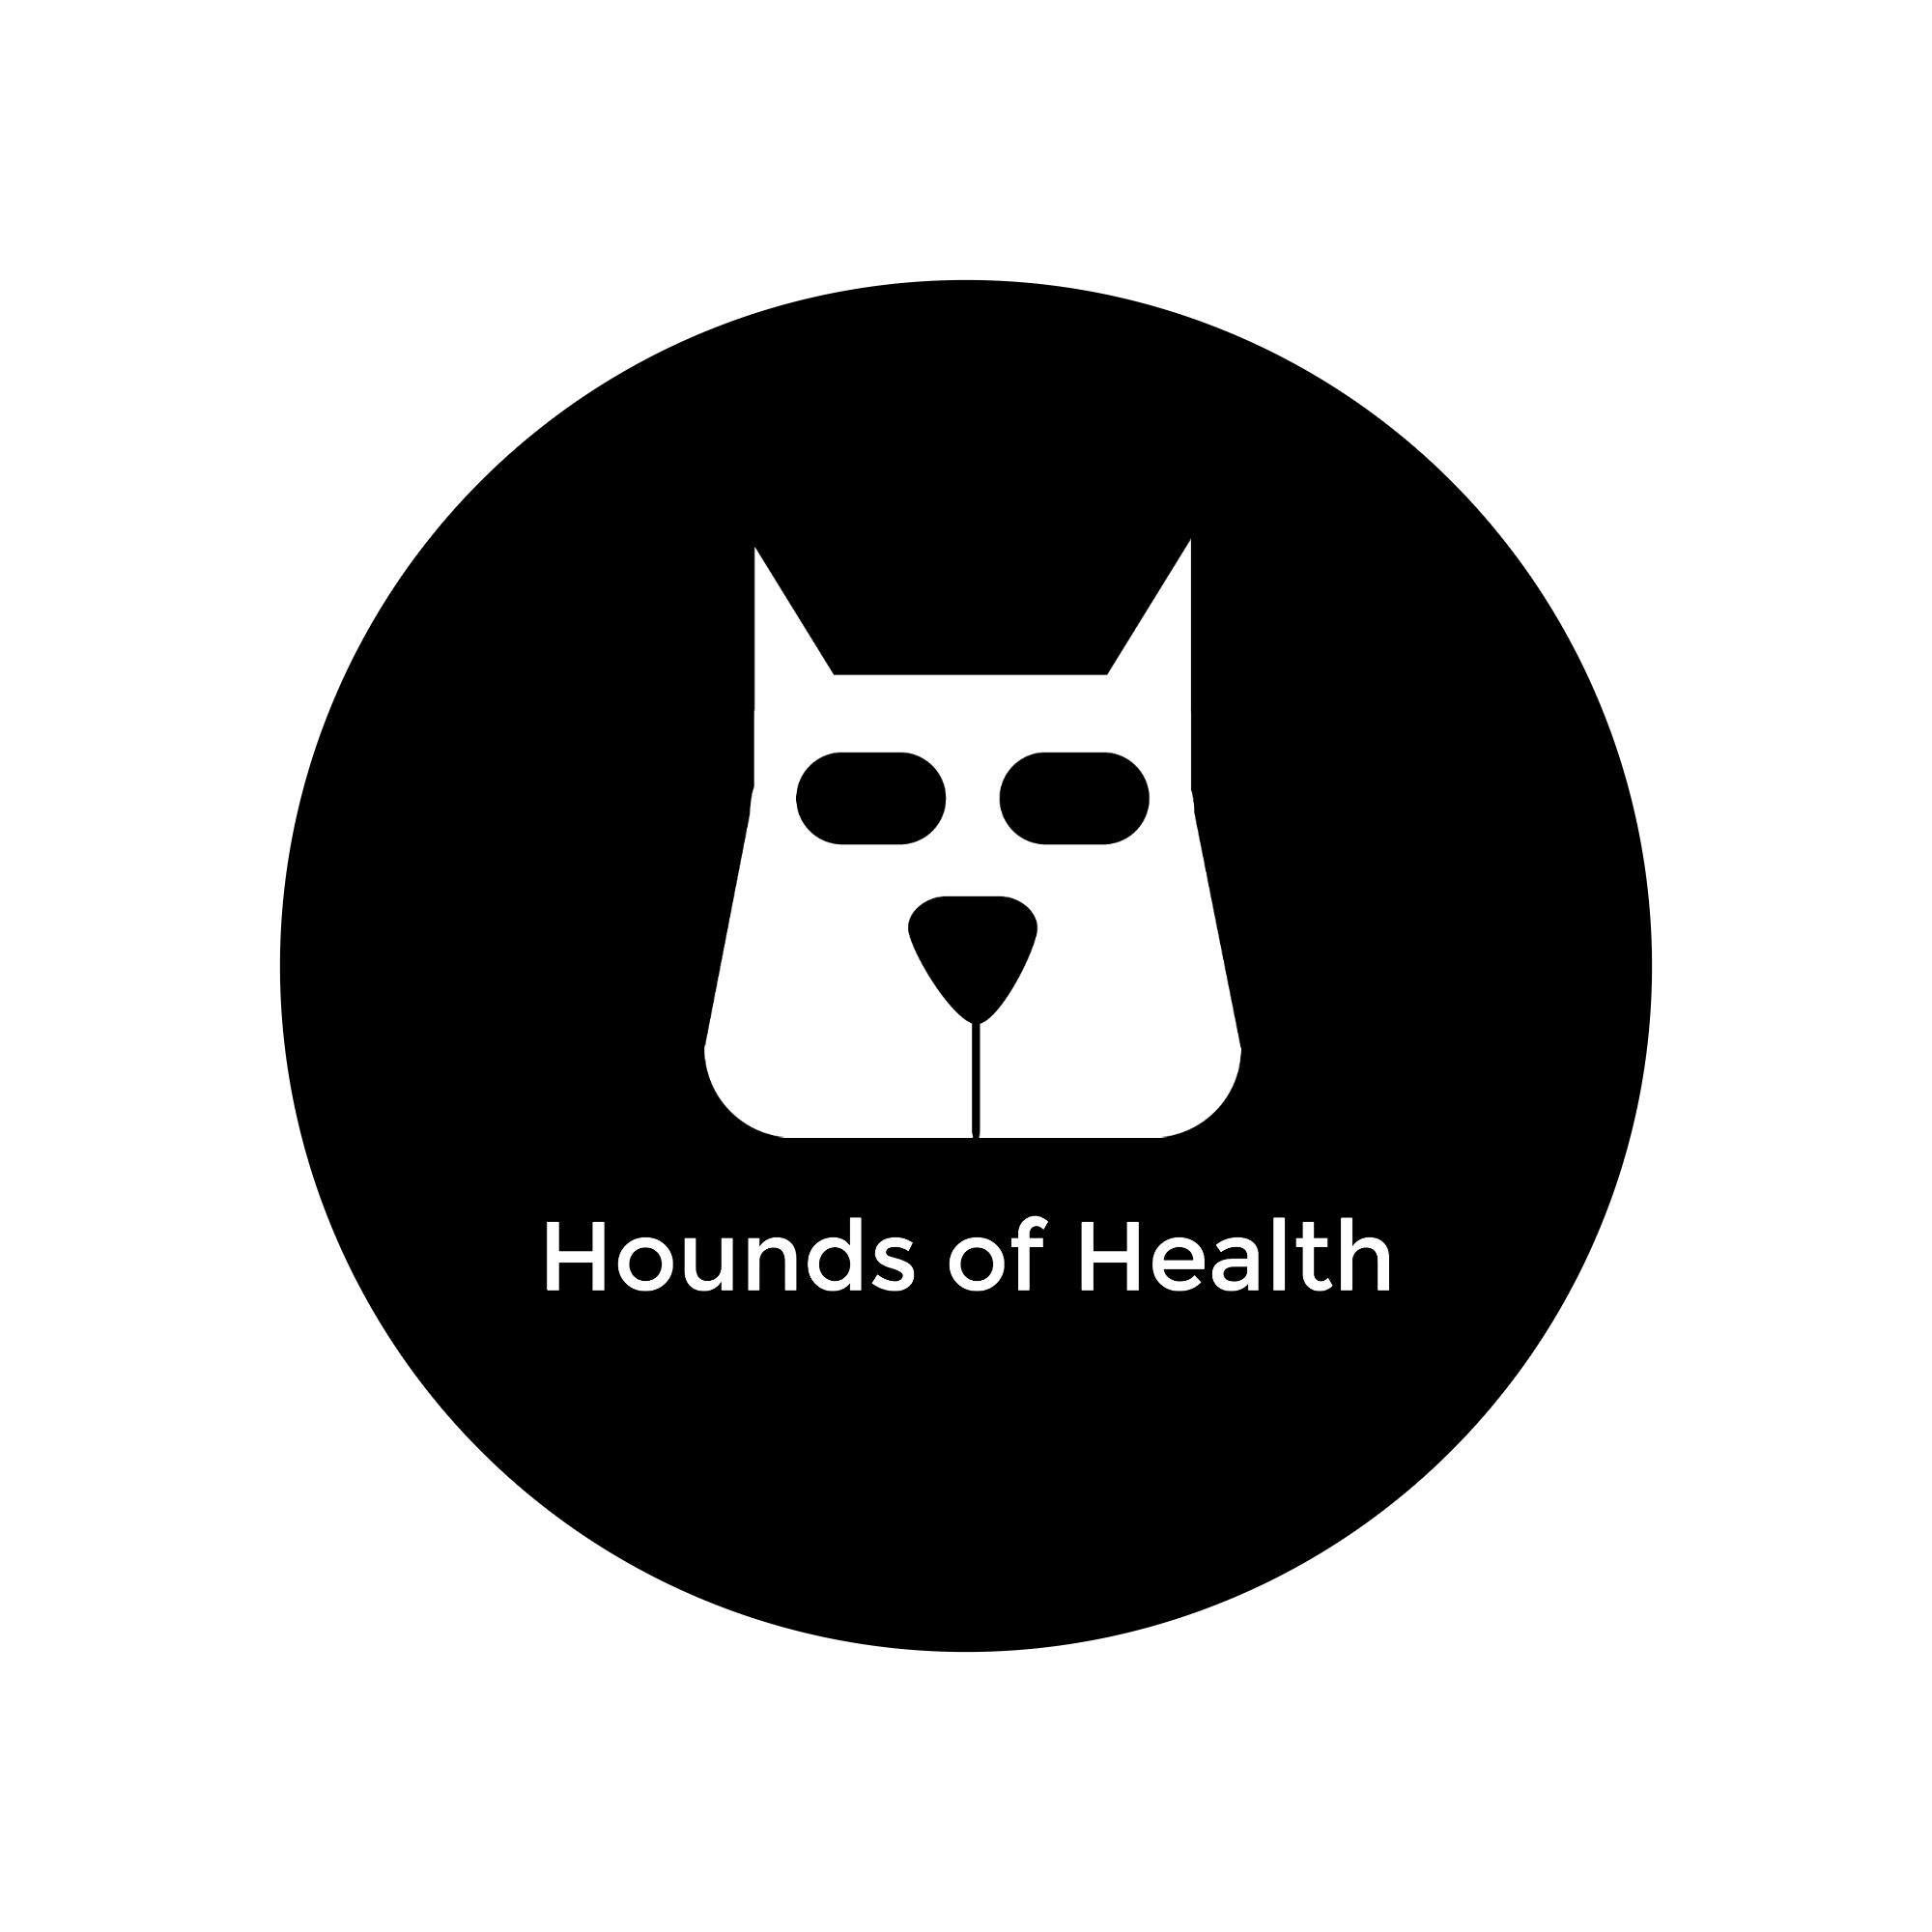 Hounds of Health